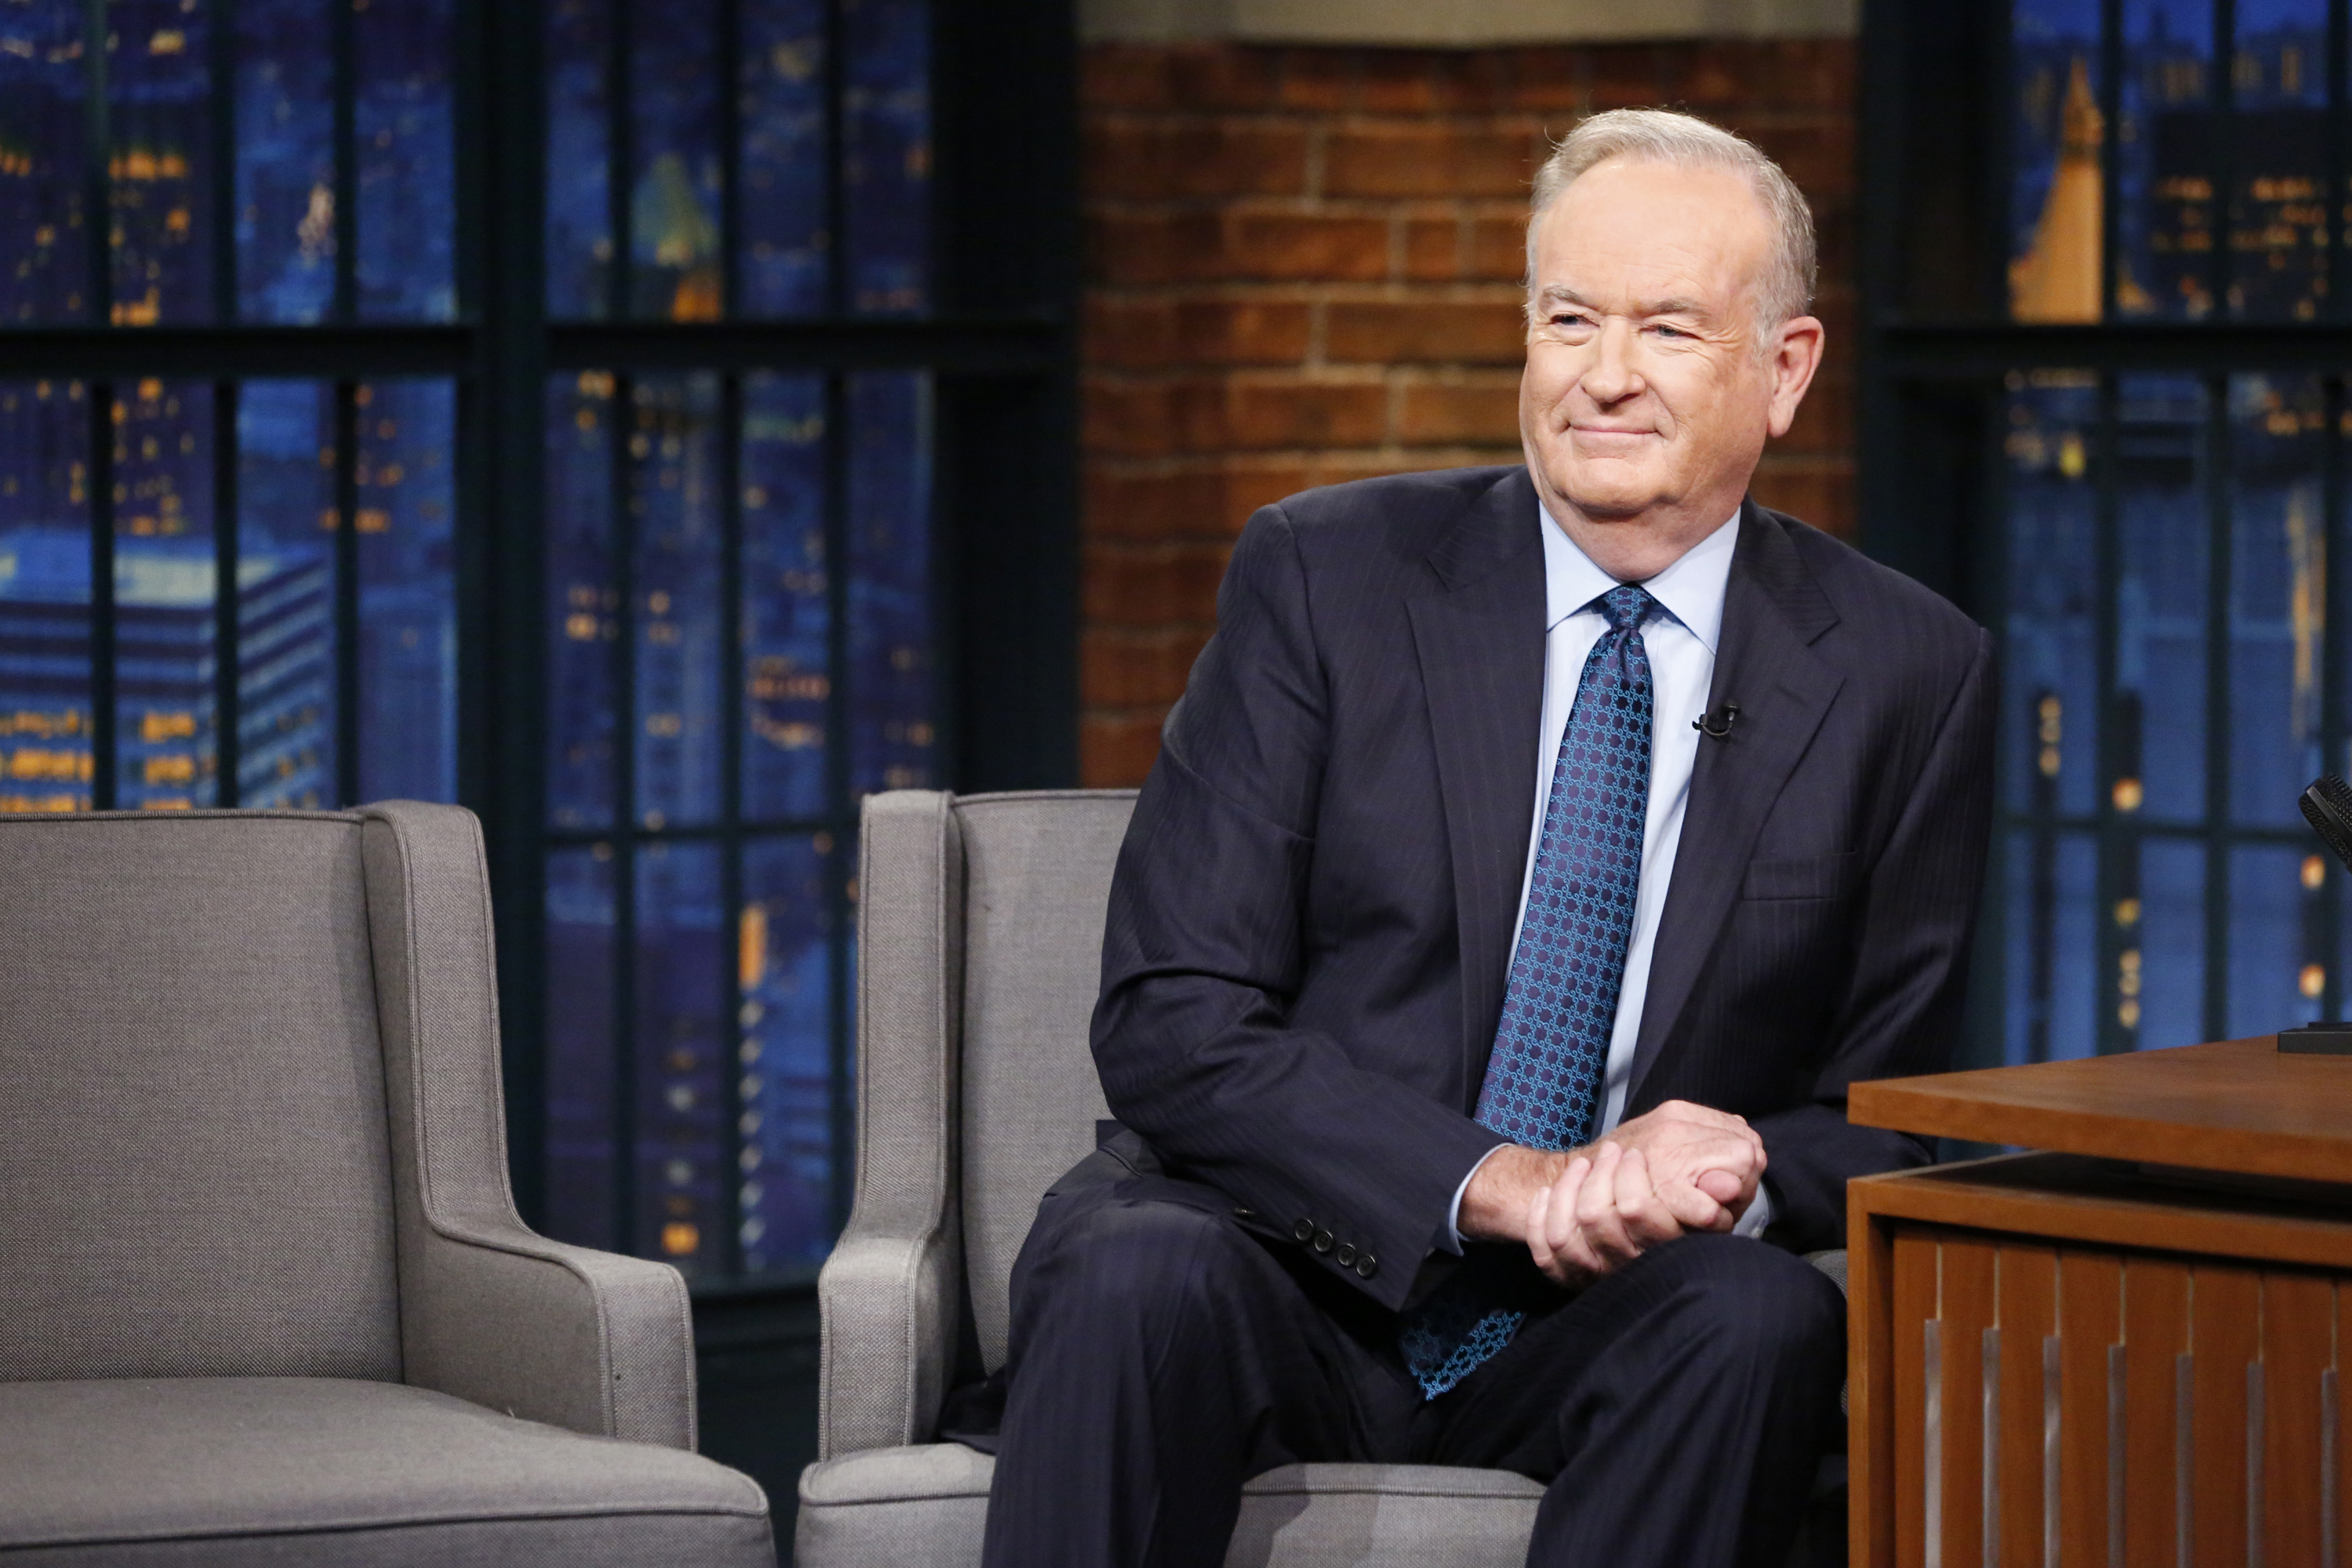 Political commentator, Bill O'Reilly, during an interview on July 13, 2016.